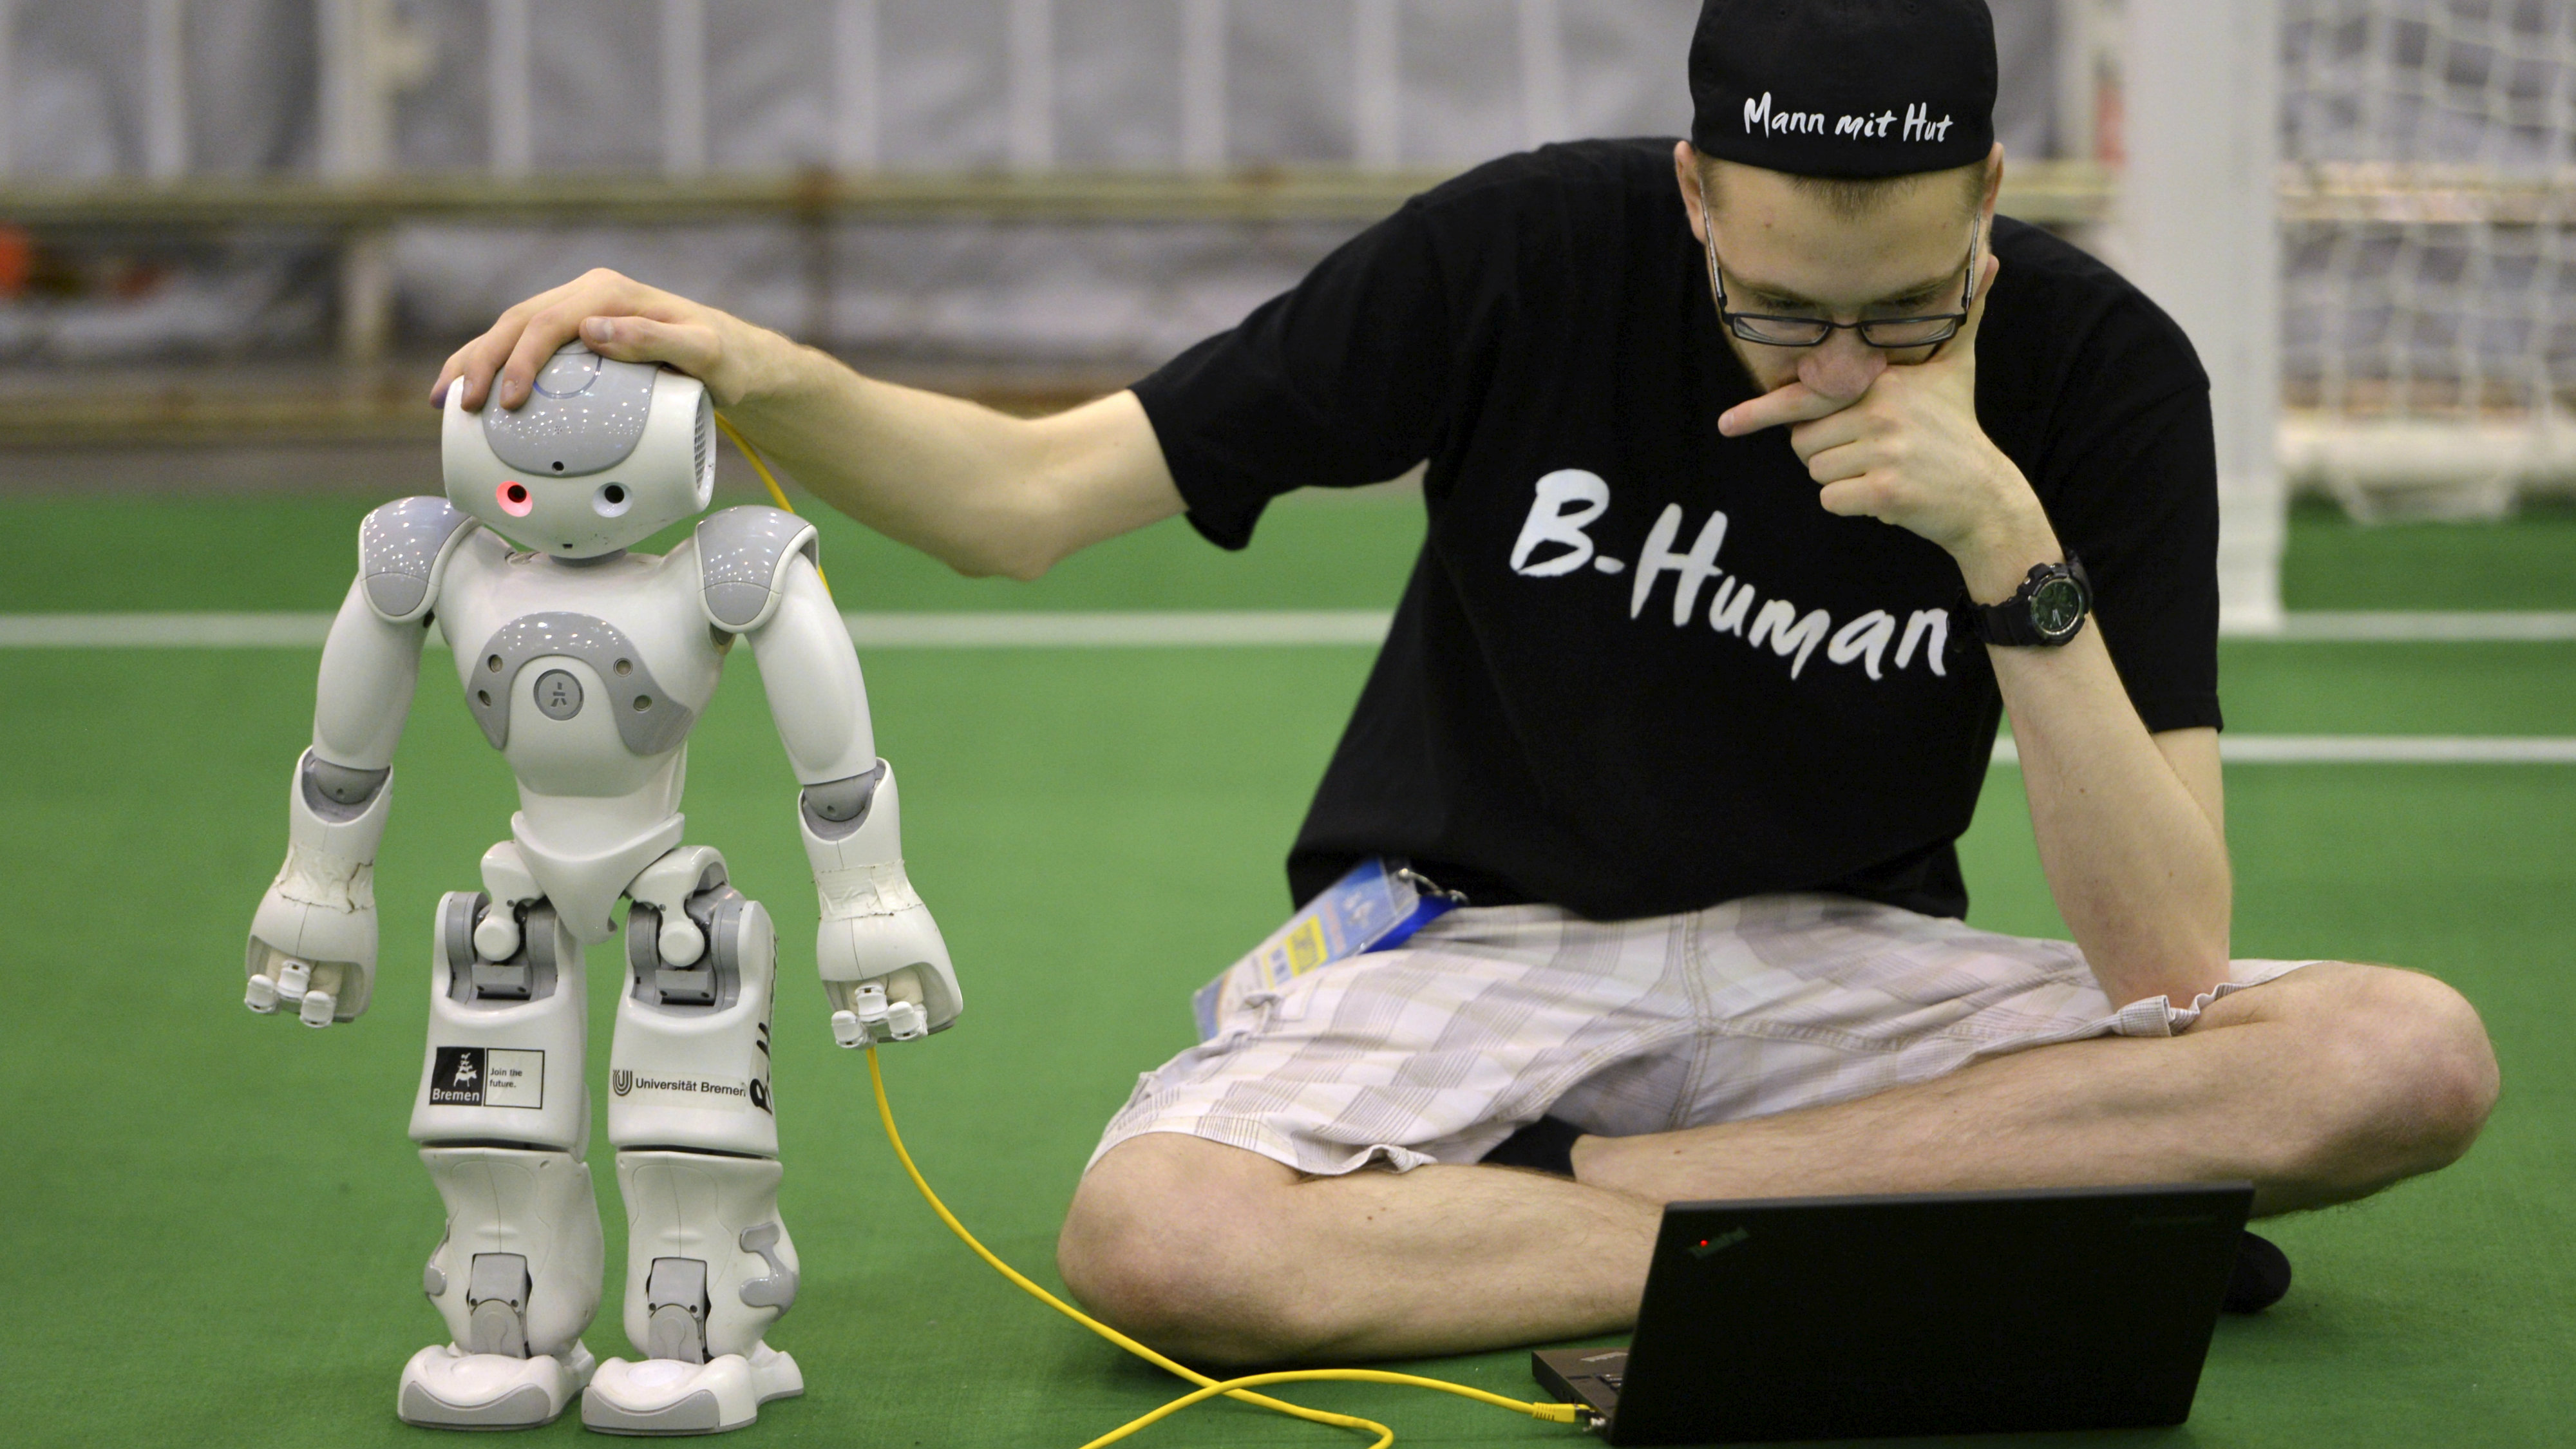 """A member from a German team adjusts a humanoid robot during the 2015 Robocup finals in Hefei, Anhui province, July 22, 2015. The Robocup, or """"Robot Soccer World Cup"""", is an annual international robotics competitions which is held between July 17 - 23 this year in China's Hefei"""